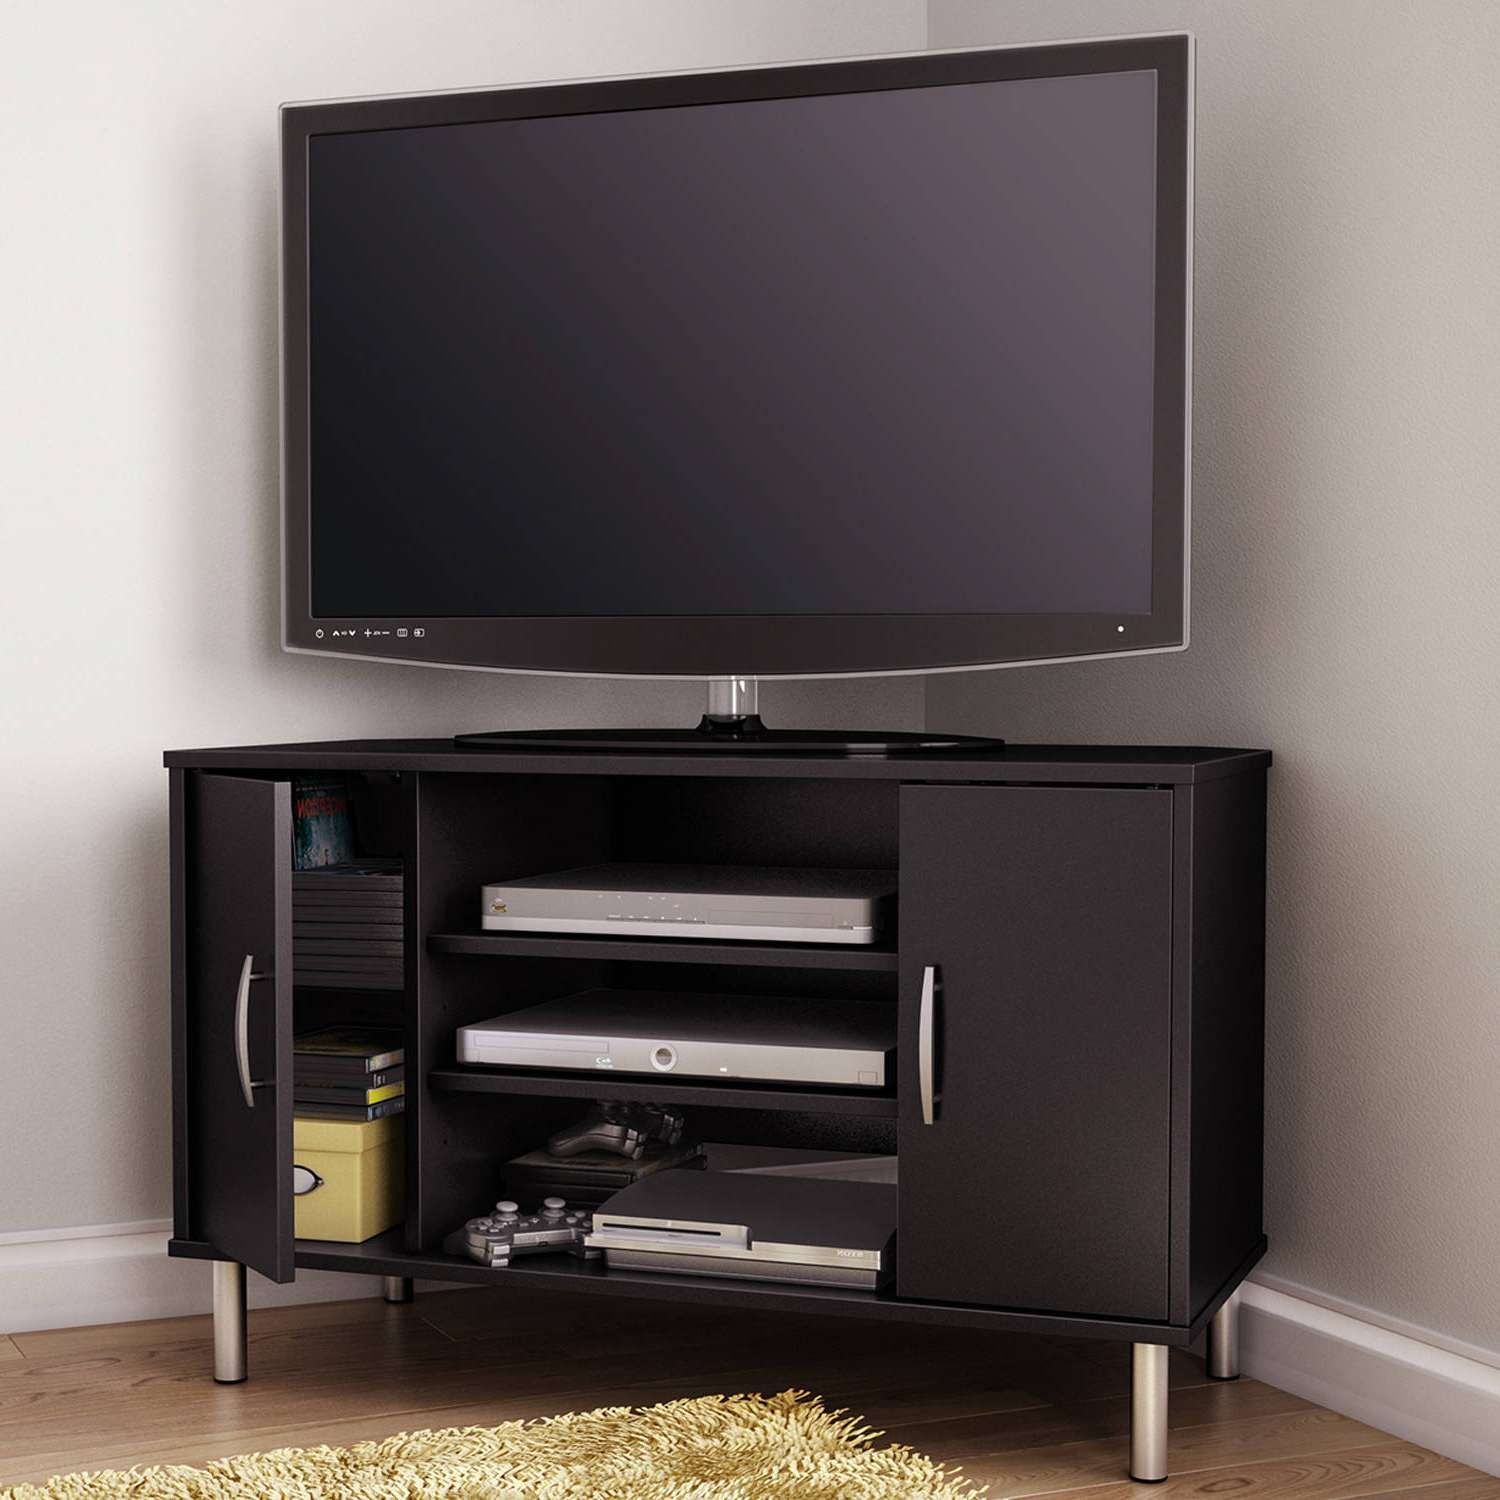 Corner Tv Stands Top Best Rated Cabinets Pictures Tables For Flat Throughout Corner Tv Cabinets For Flat Screen (View 10 of 20)